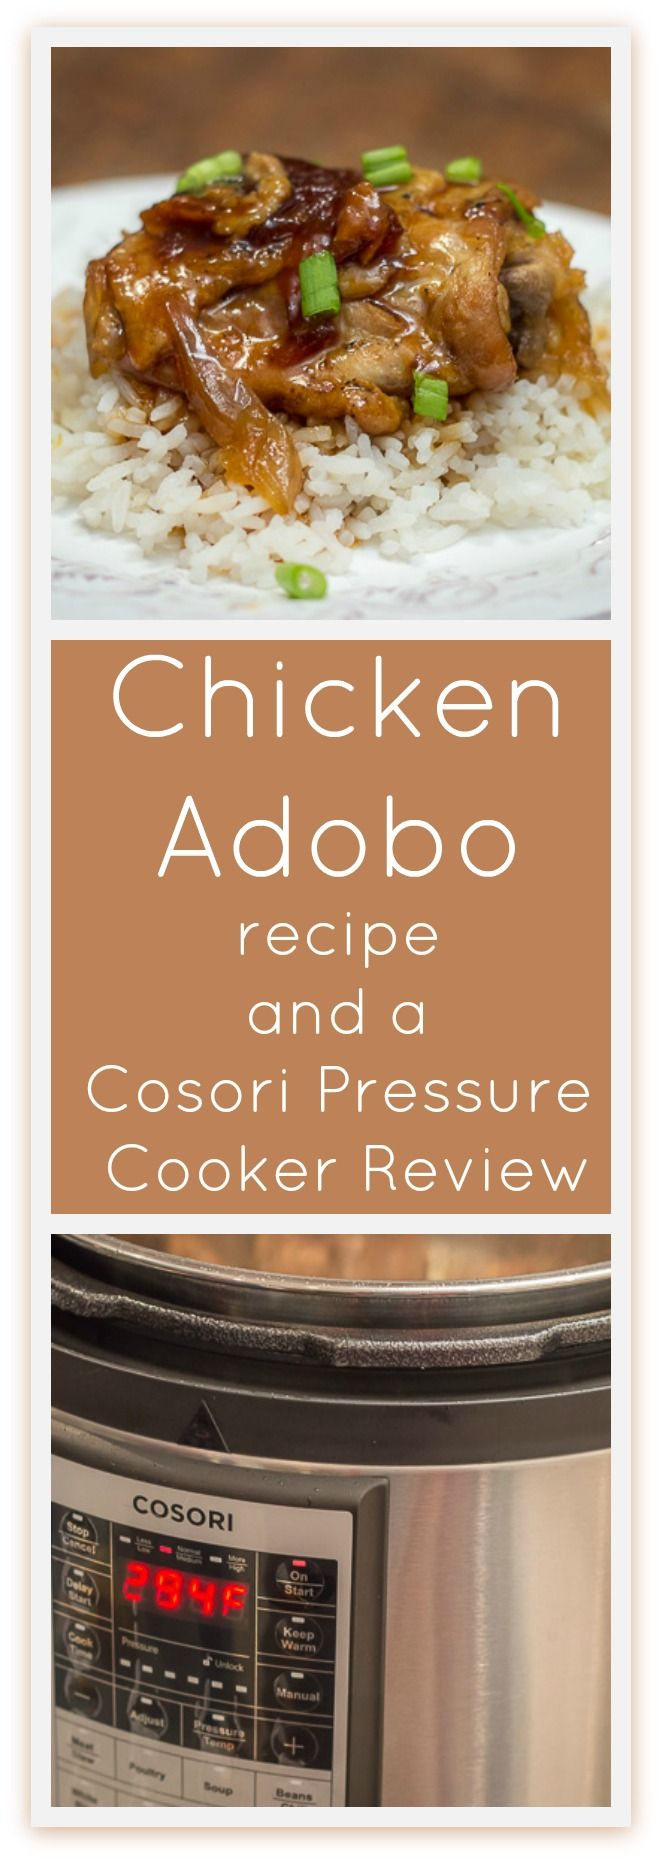 A review of the 6 Quart Premium Cosori Pressure Cooker, and a delicious, easy, and quick recipe for Chicken Adobo in a pressure cooker, plus, a giveaway! #sponsored